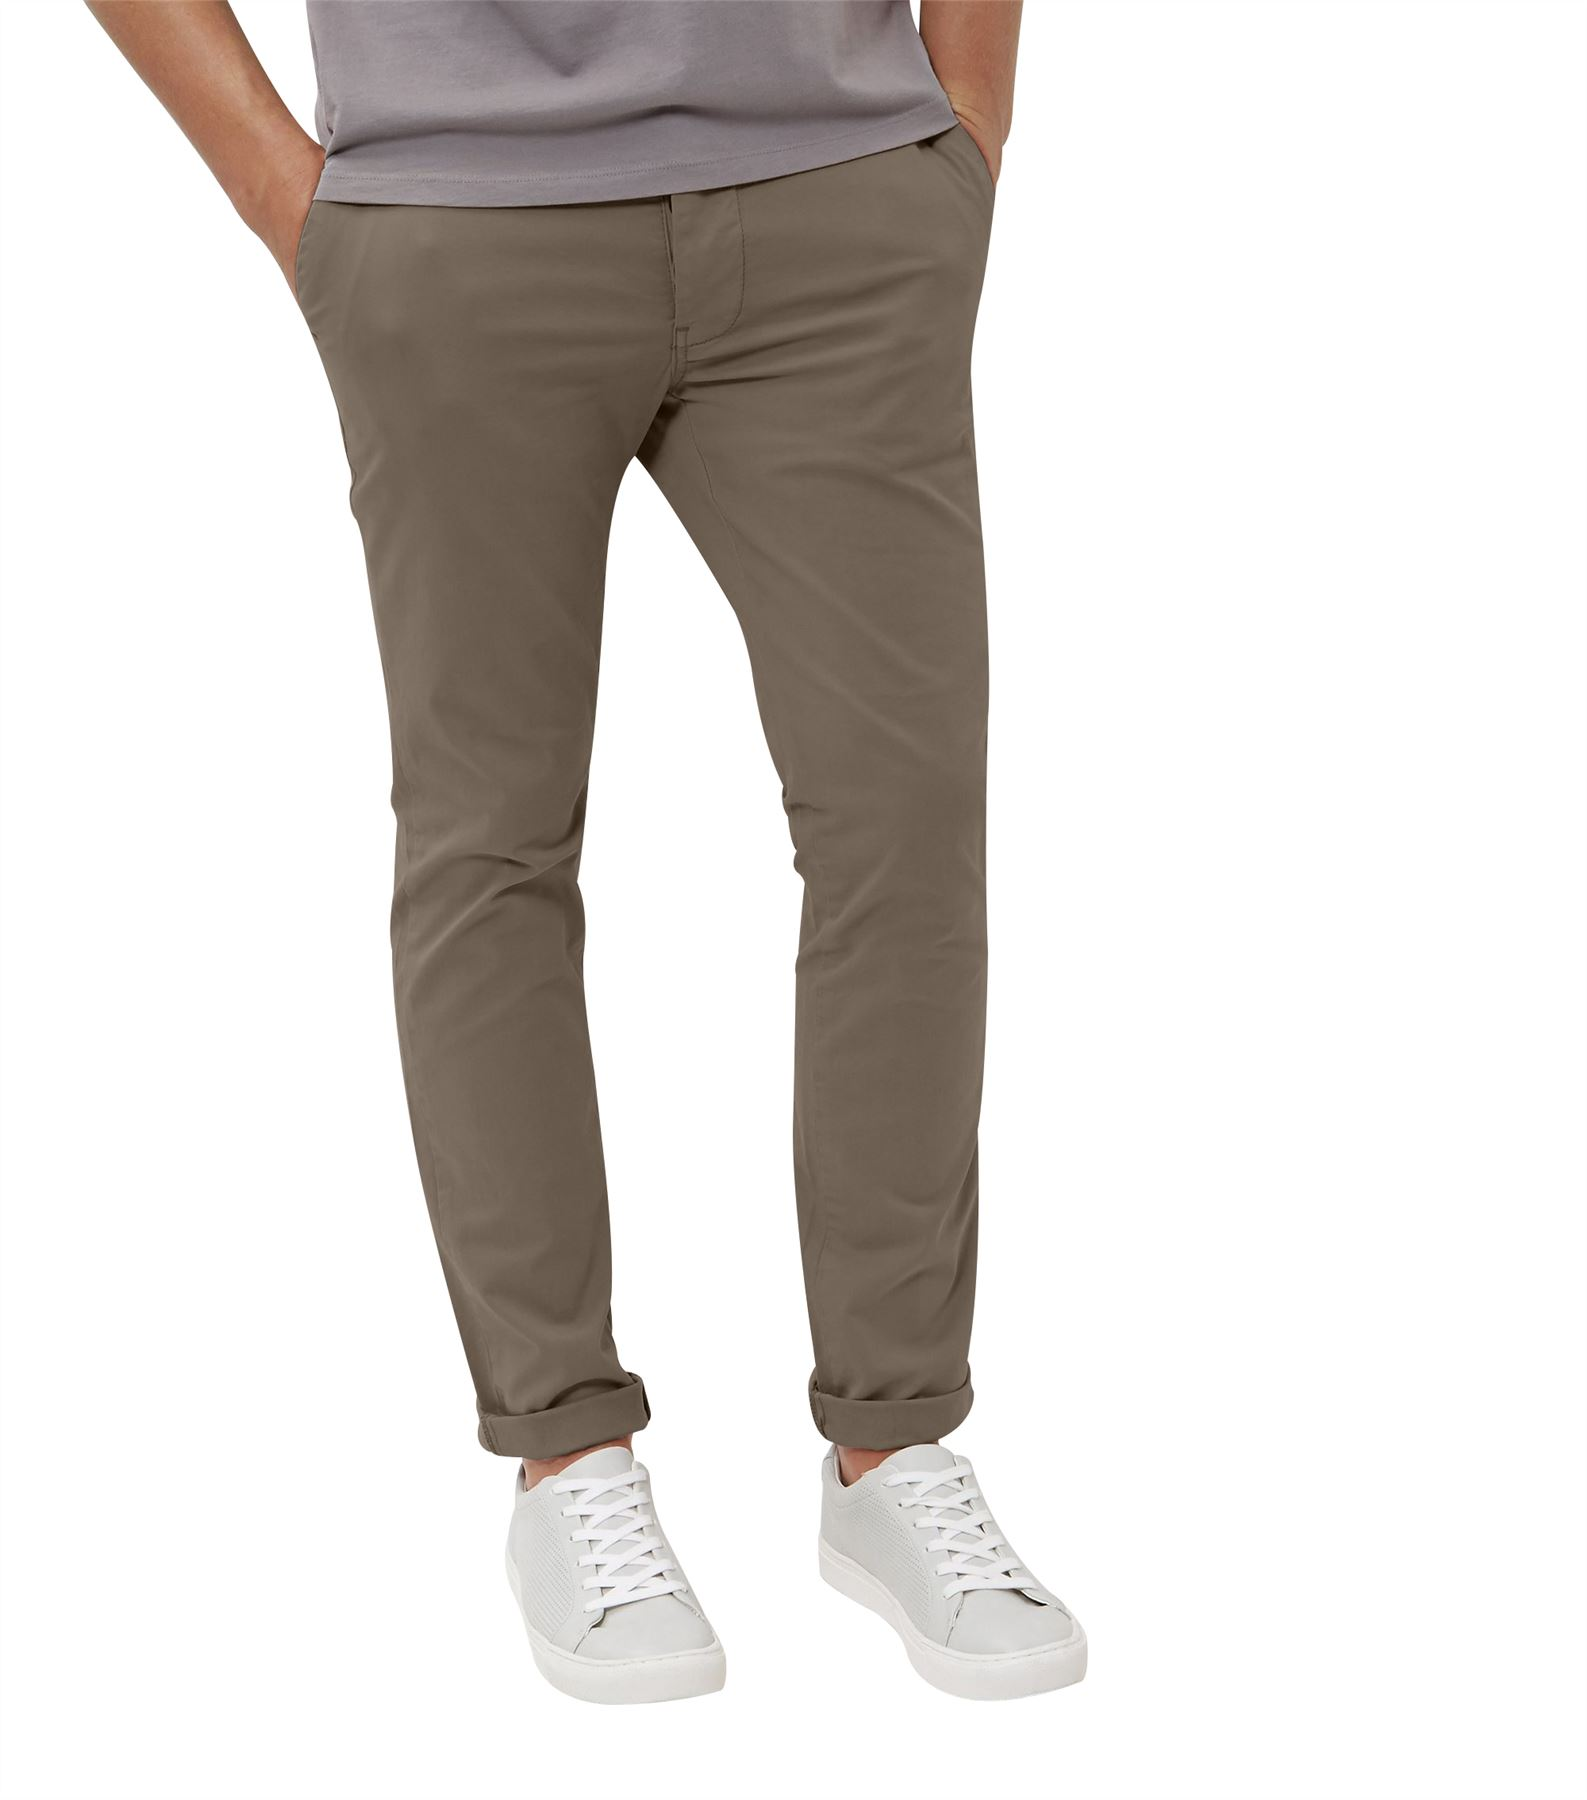 Shop Women's Slim Leg Pants at seebot.ga Ankle pants in a variety of fabrics, colors & prints.